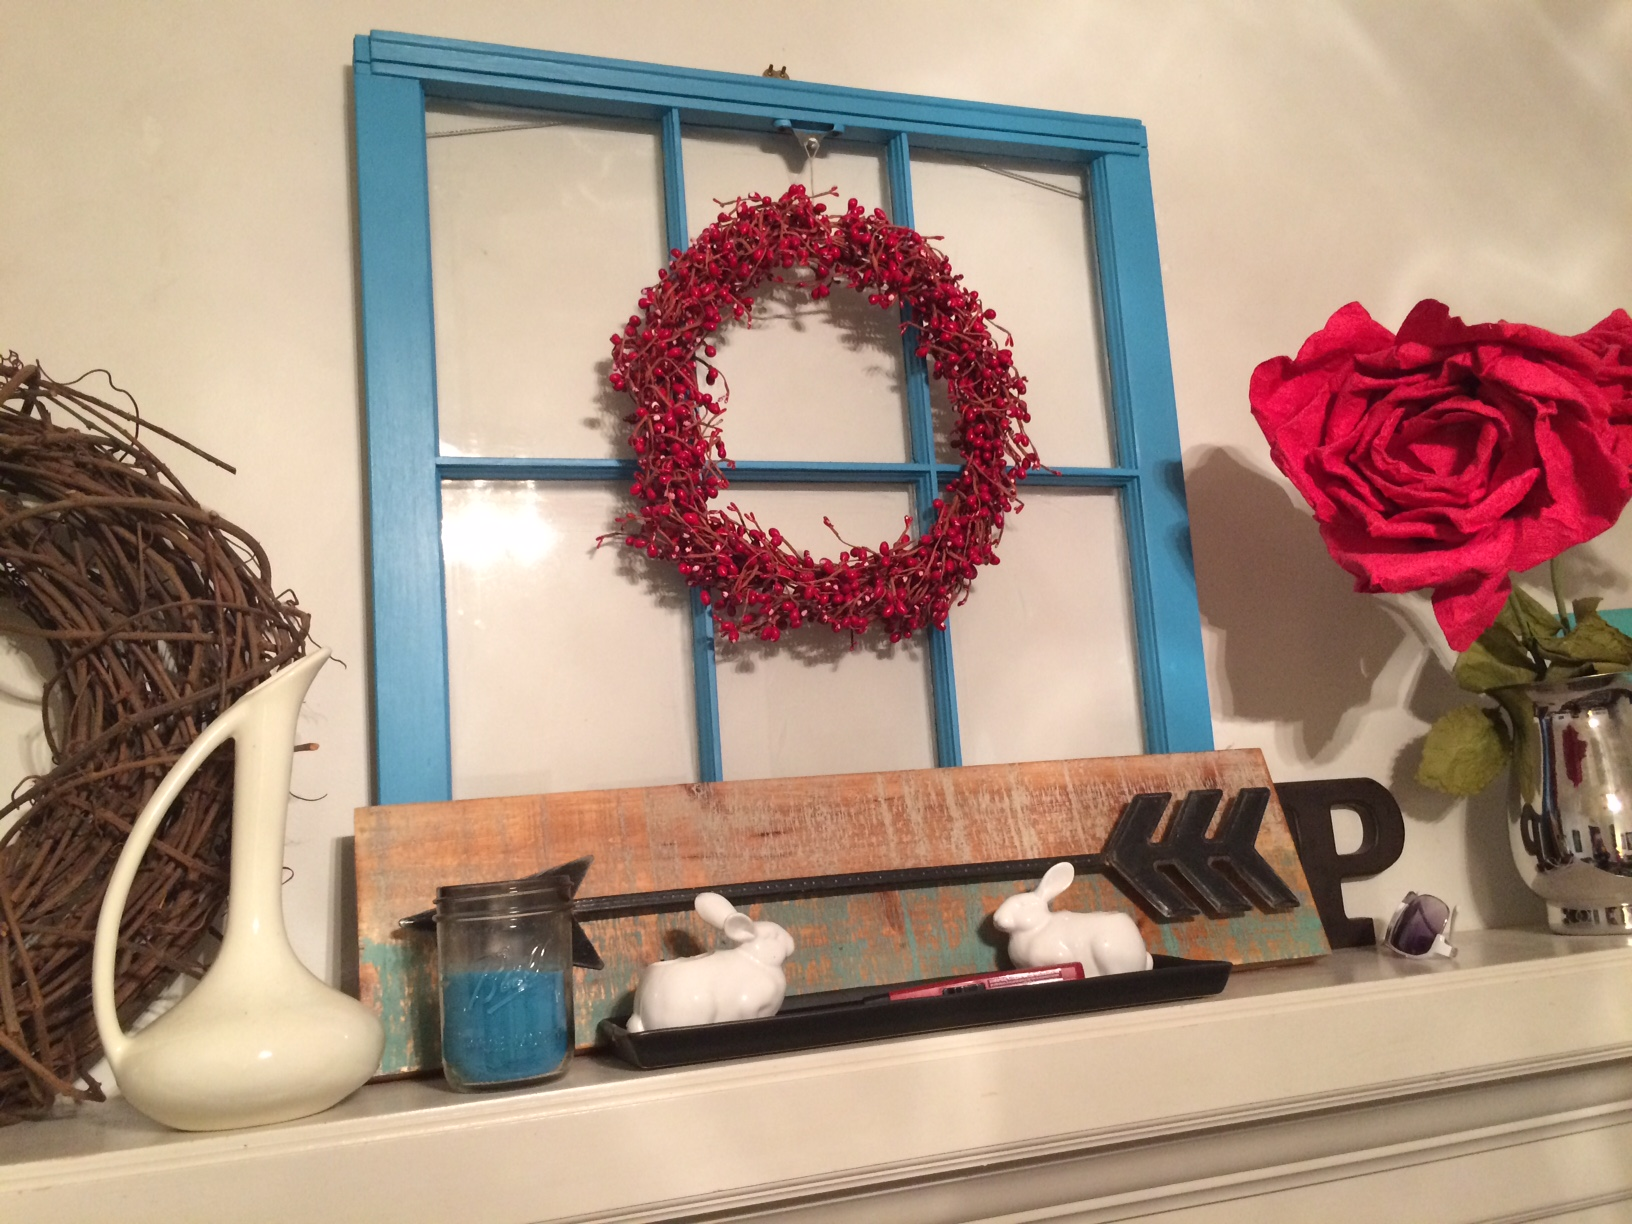 Frugal Decorating: Seasonal Mantel Update With Thrifted Finds